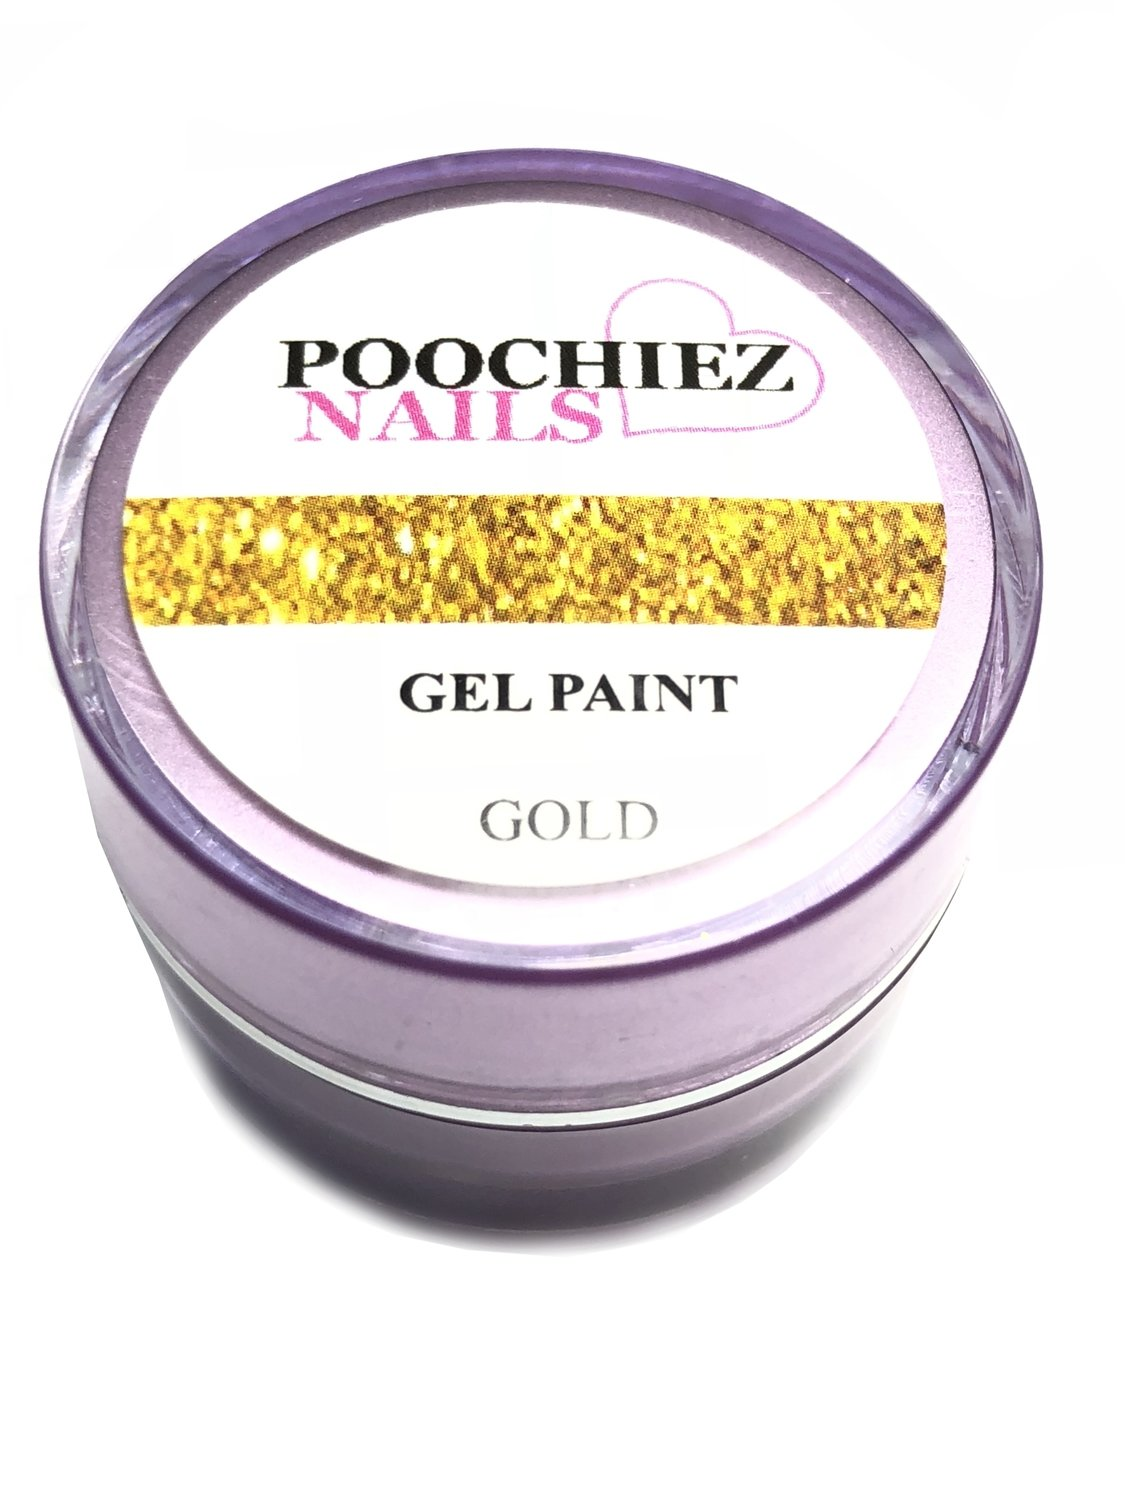 GOLD GEL PAINT 10 GRAMS